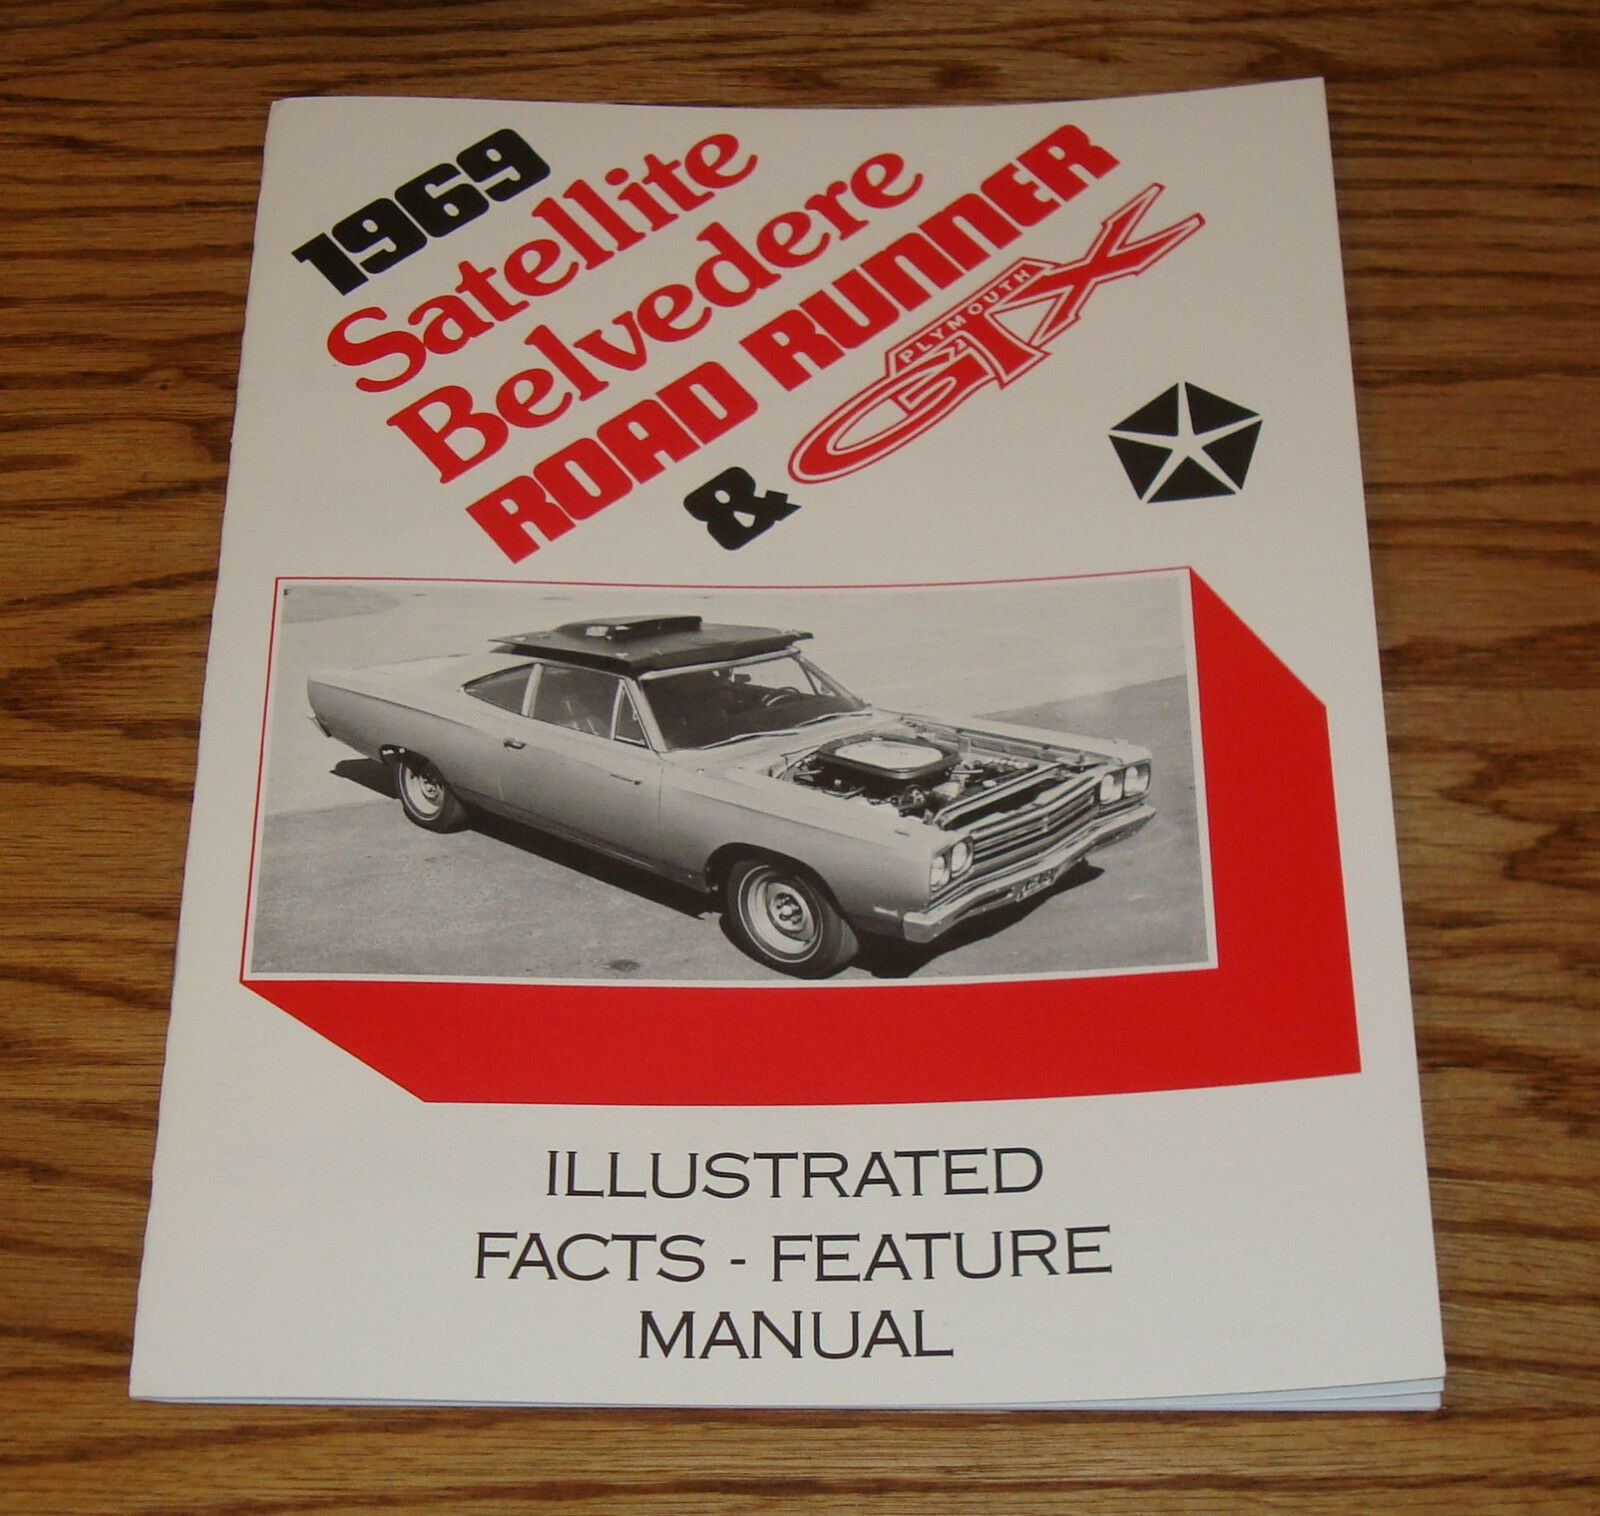 1969 Gtx Wiring Diagram Electrical 1967 Plymouth Fury Engine Belvedere Satellite Road Runner Facts Feature Amx